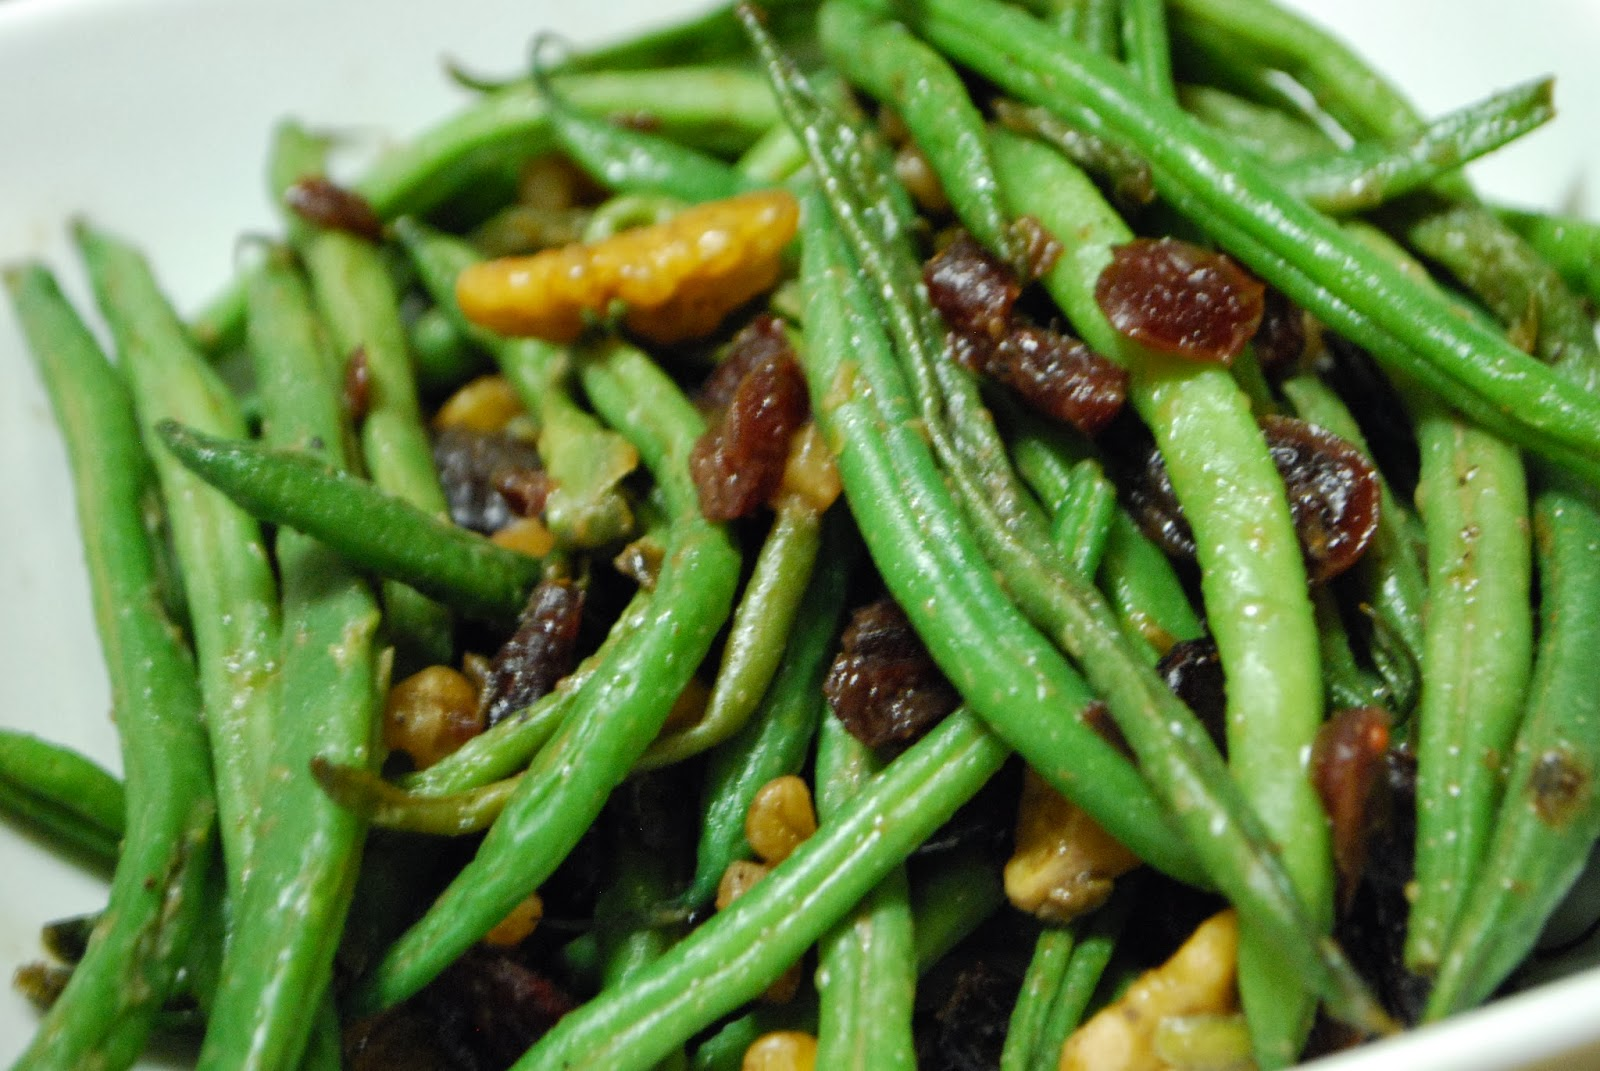 Simply Mangerchine: Green Beans with Cranberries and Nuts